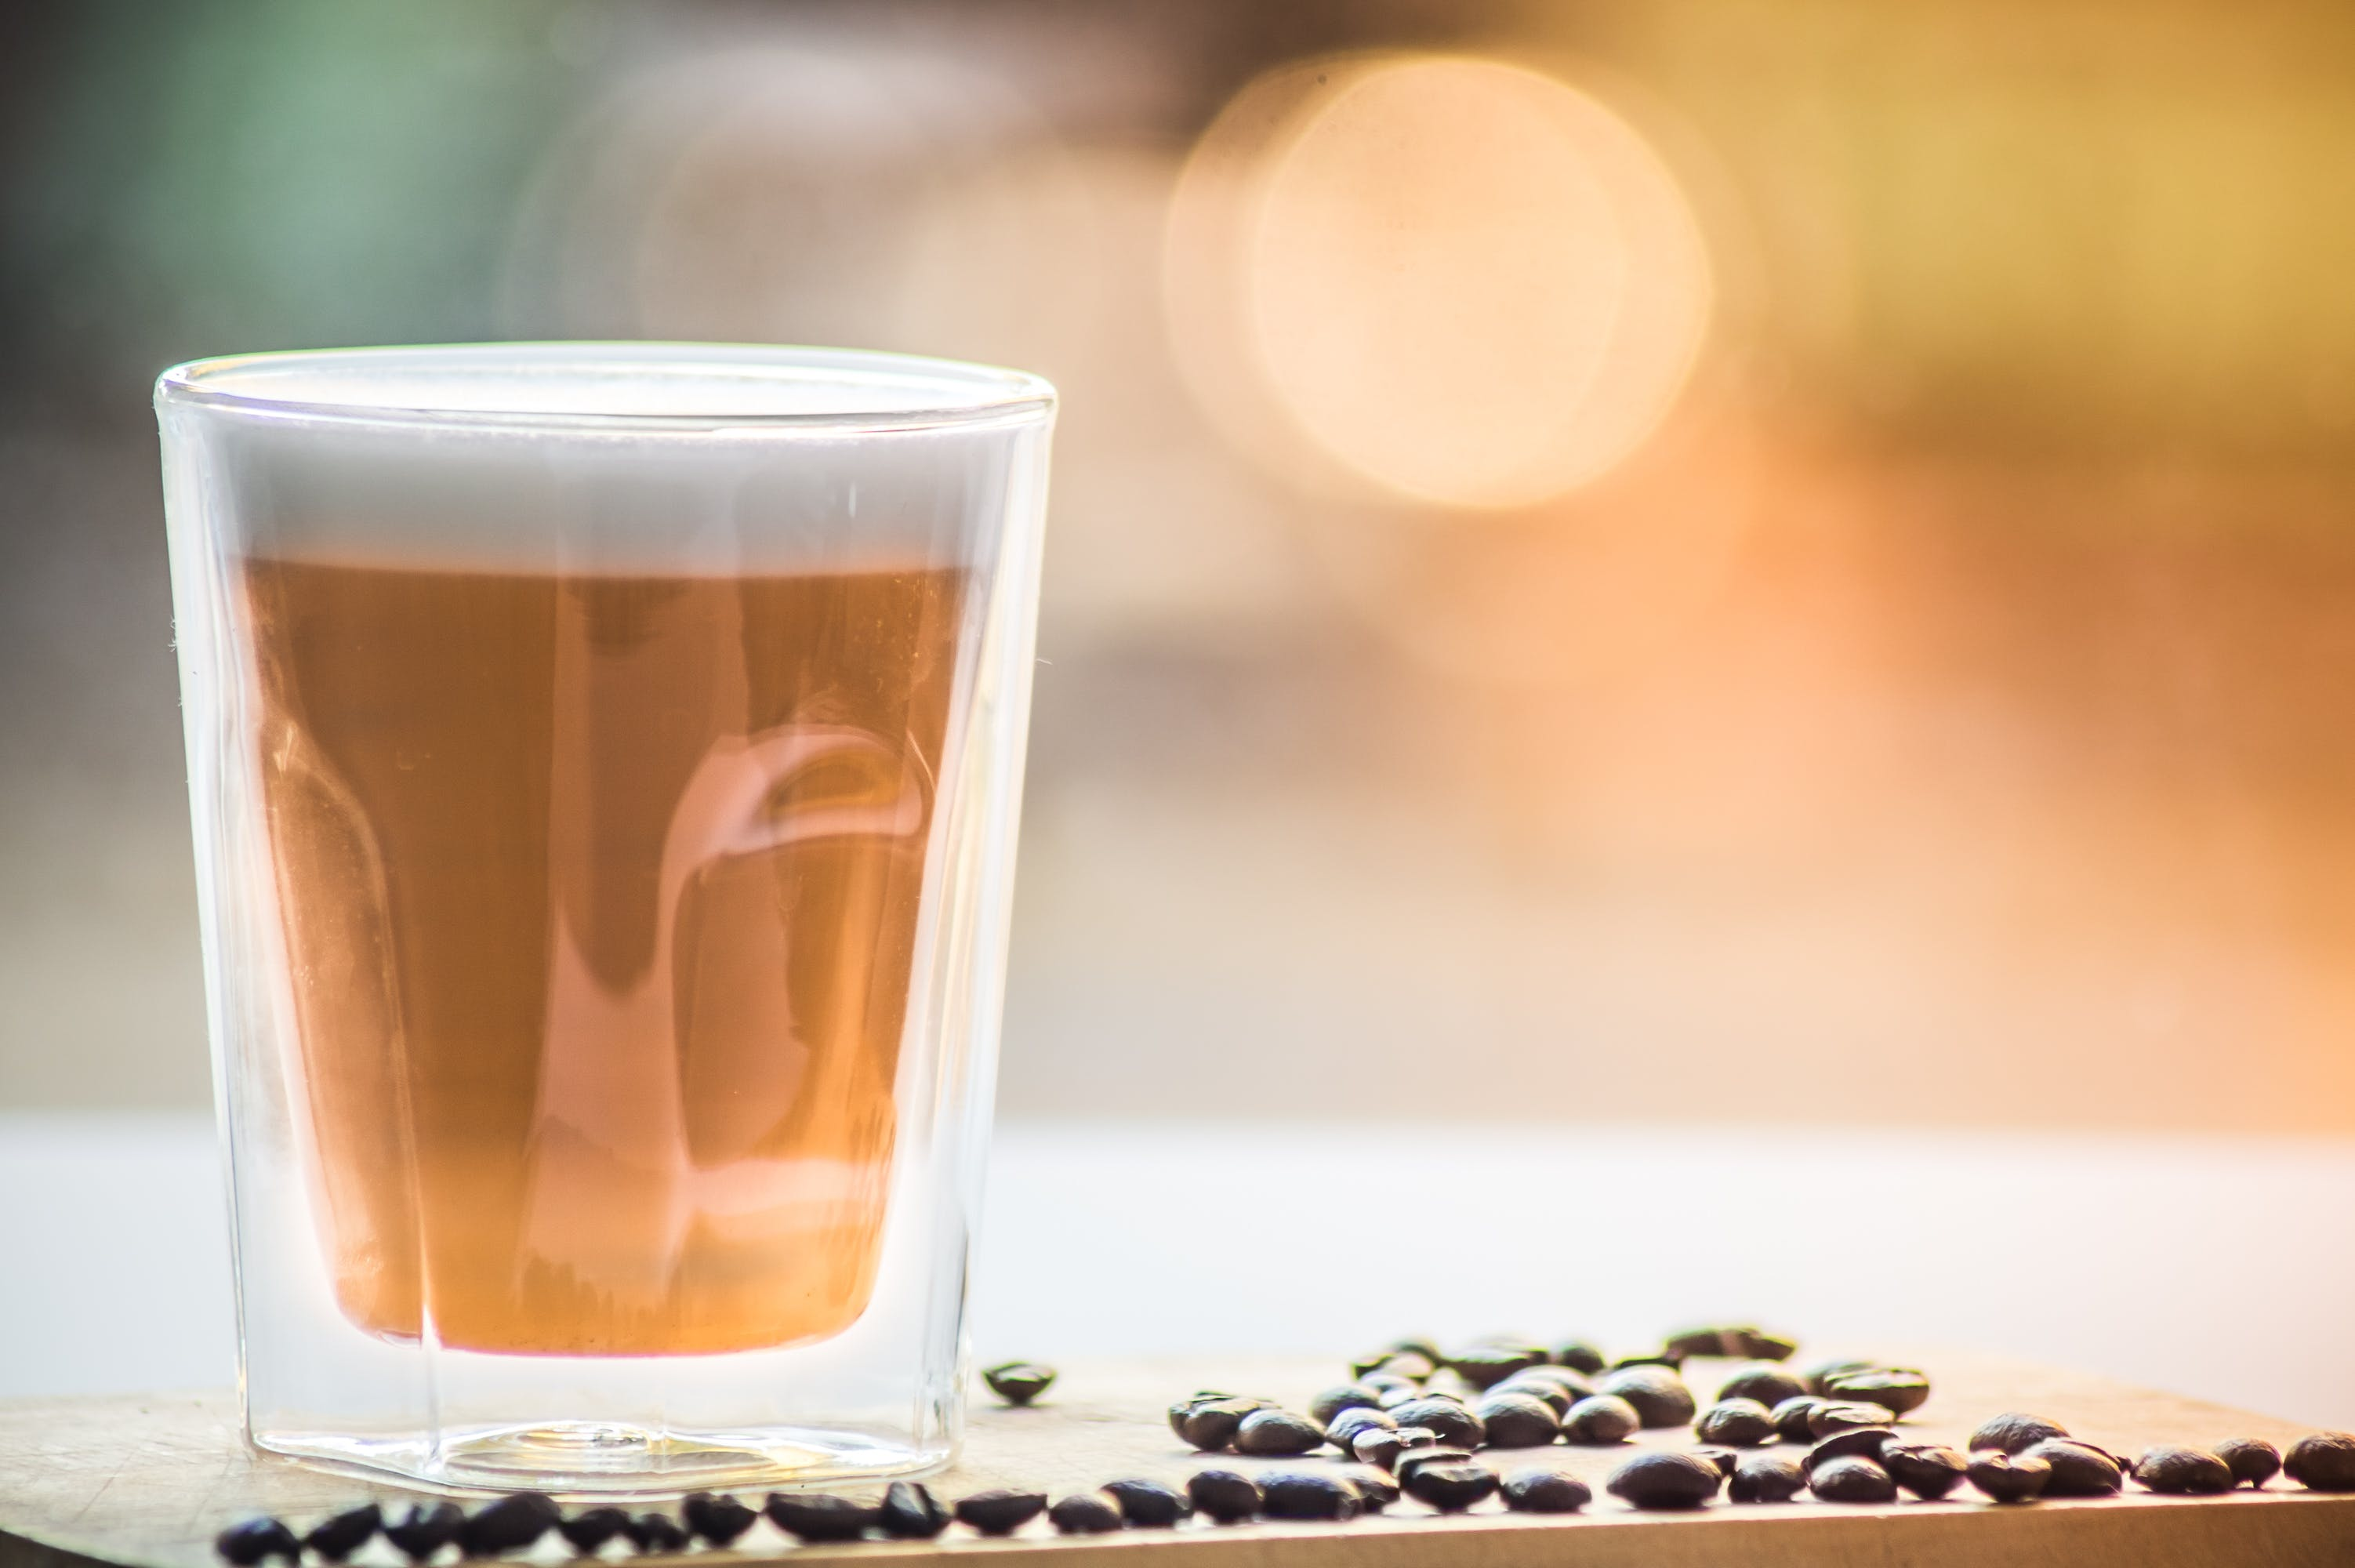 Coffee in Drinking Glass With Black Beans